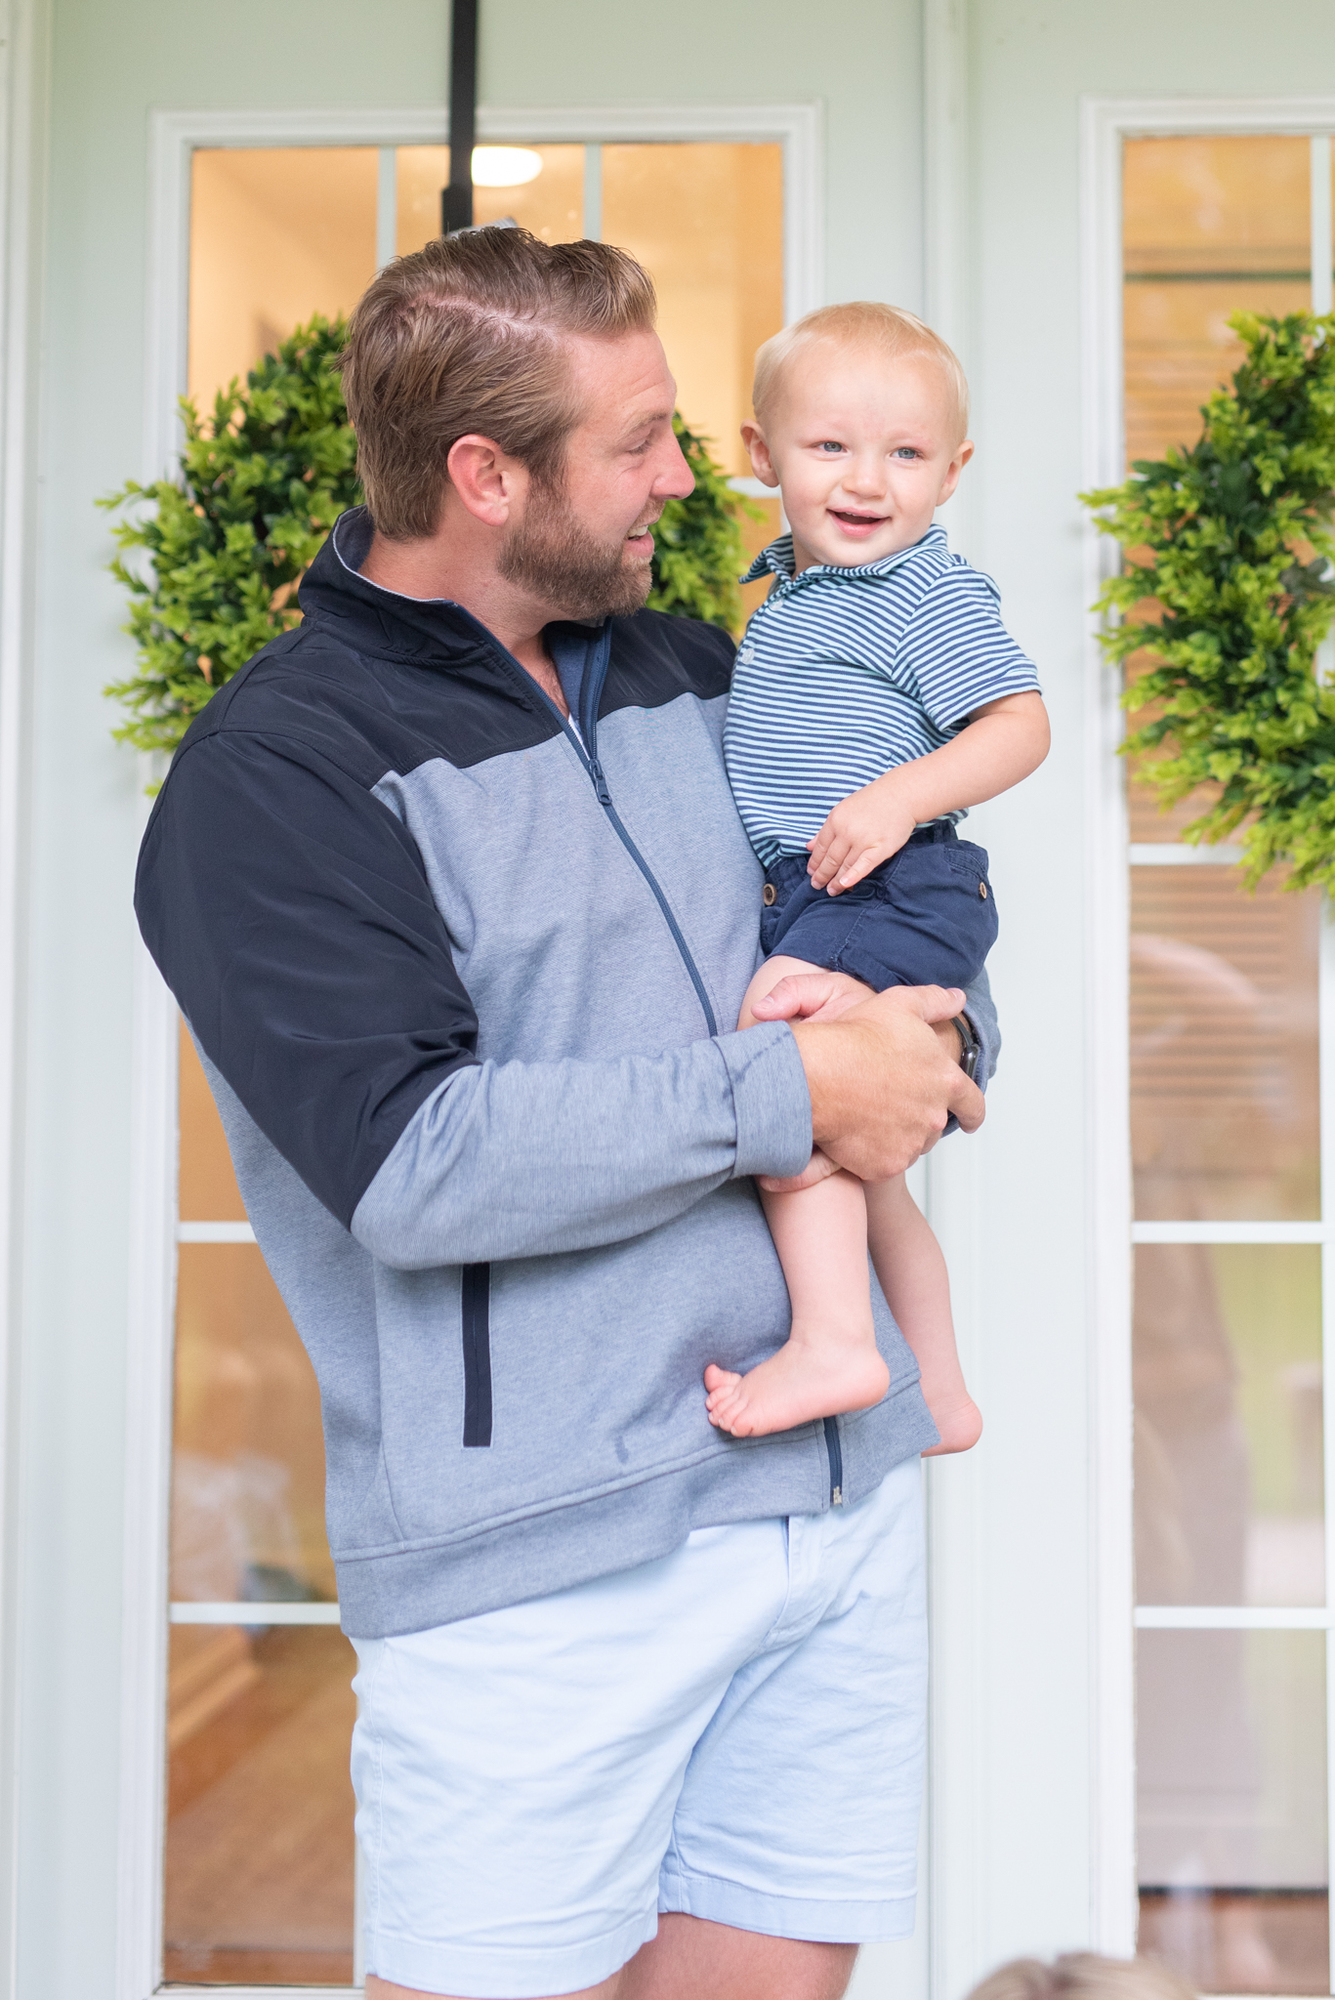 father holding toddler son on front porch